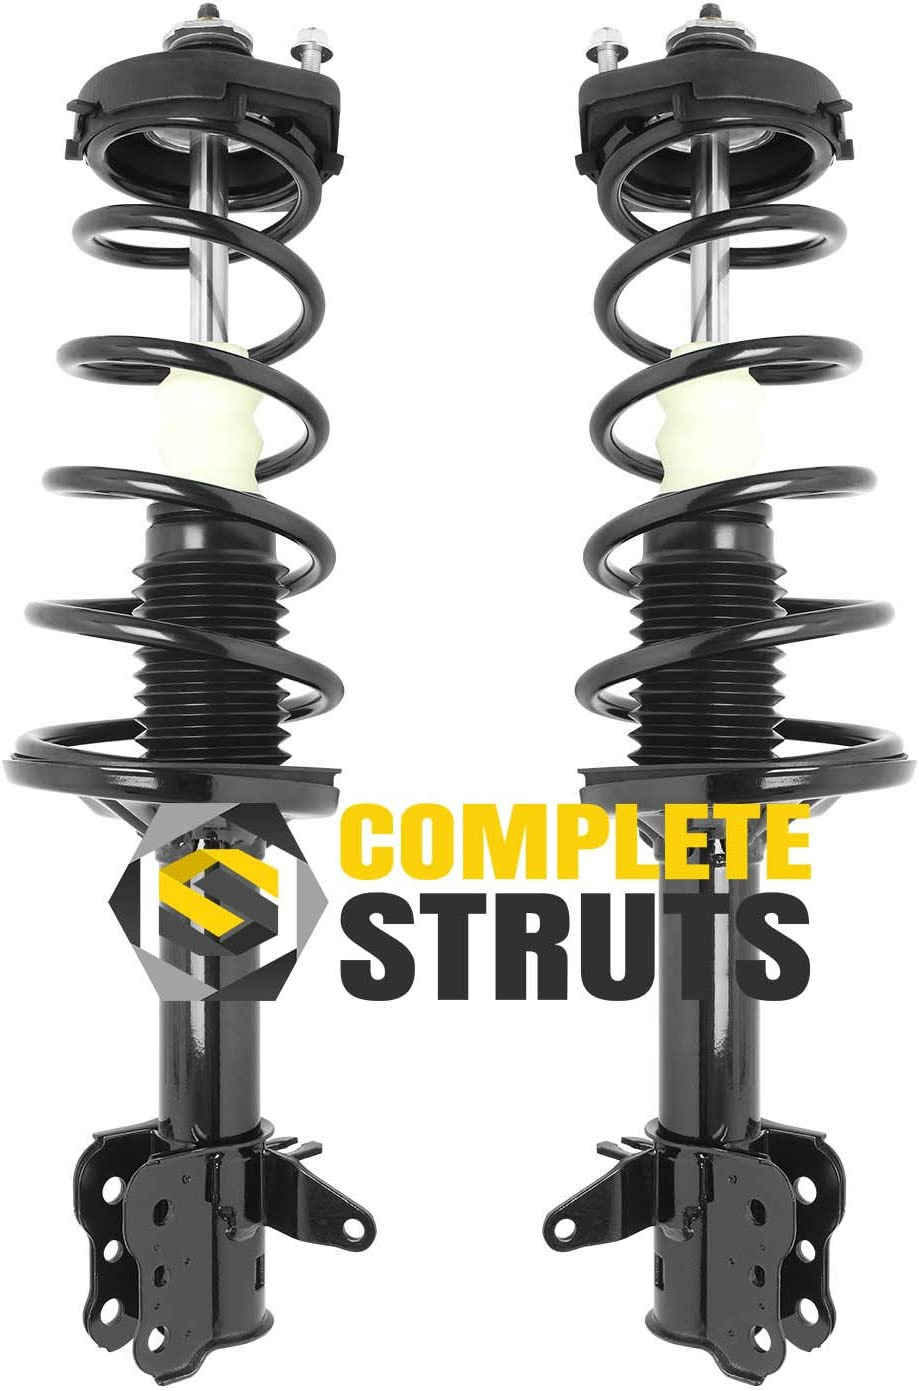 Front Pair SCITOO Complete Strut Coil Spring Assembly Replacement Struts Shocks Fit for 2000-2003 Mazda Protege,2002-2003 Mazda Protege5